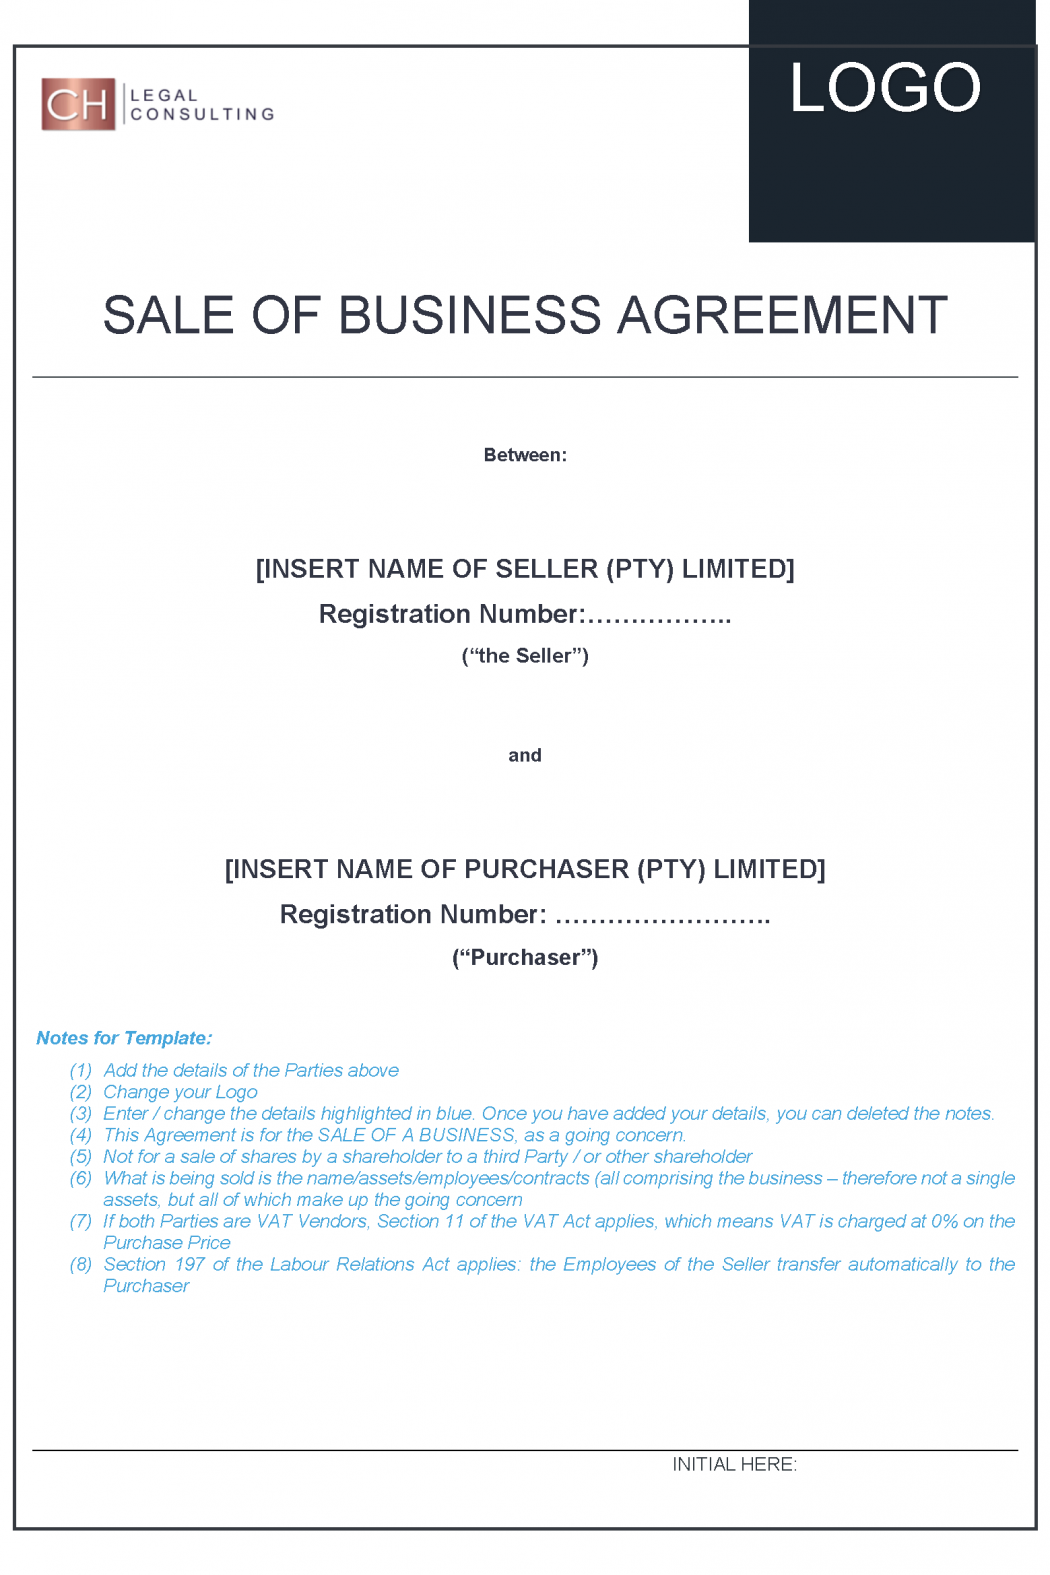 Sale of Business Agreement Precedent